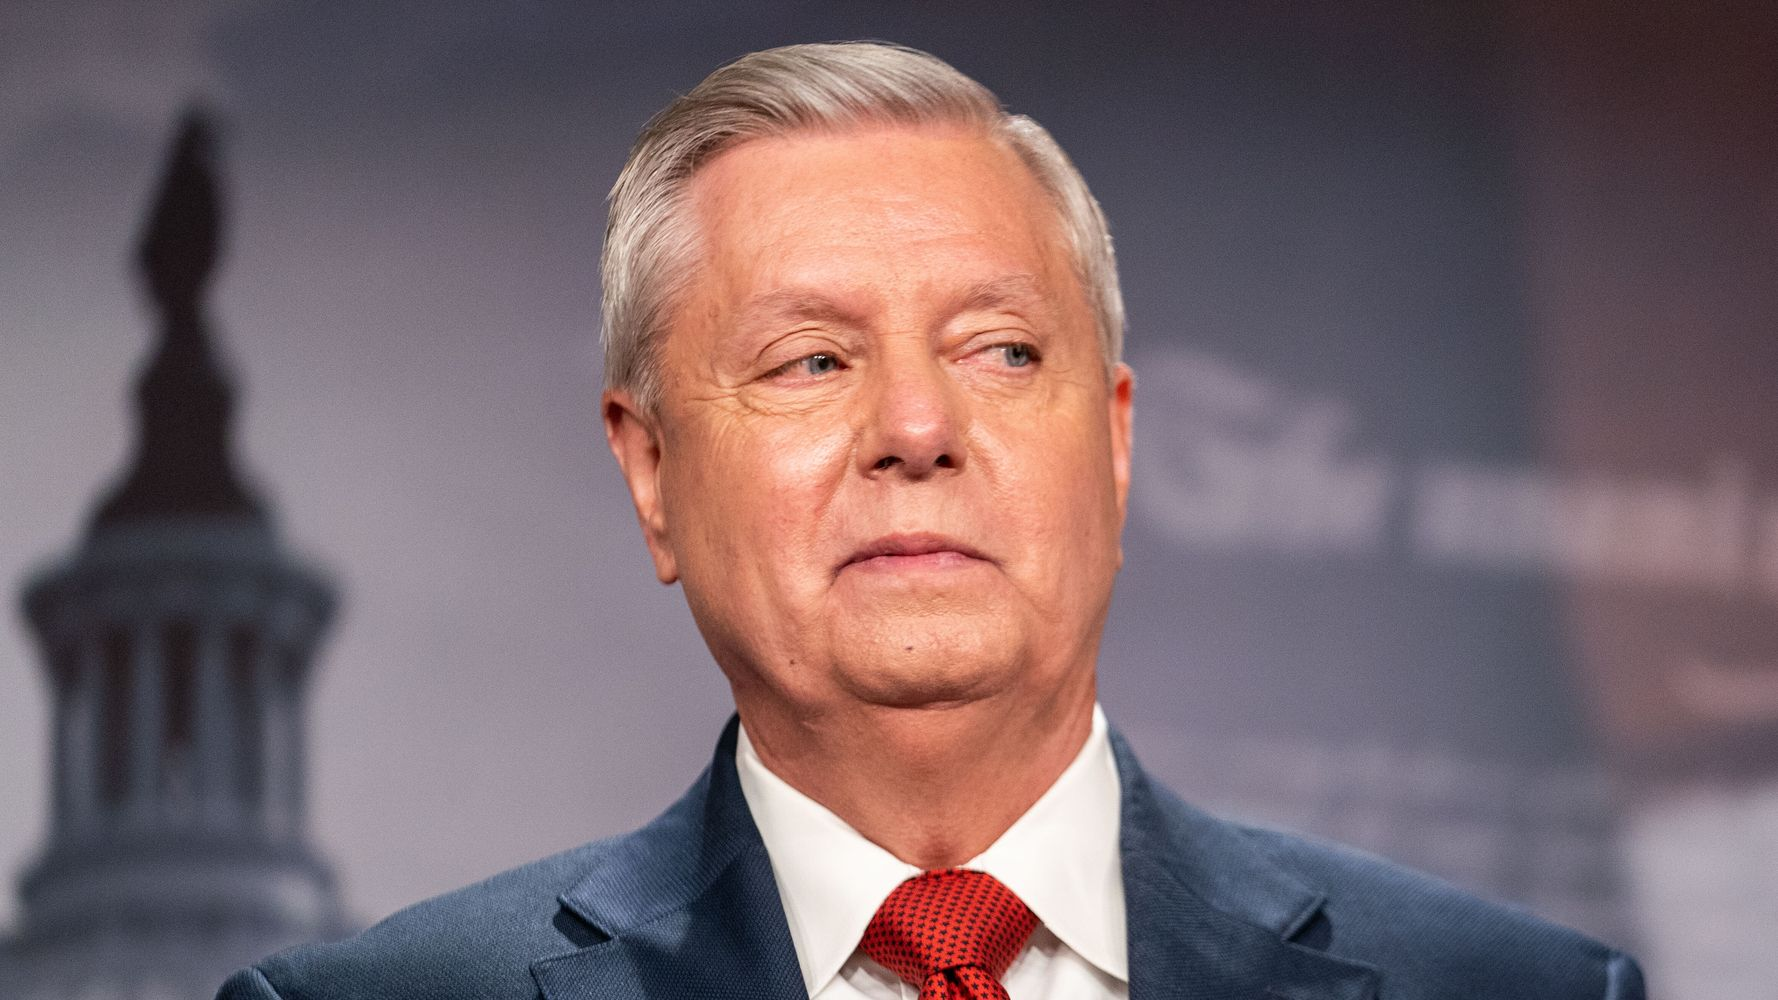 Lindsey Graham: People Trying To Erase Donald Trump Will 'Wind Up Getting Erased'